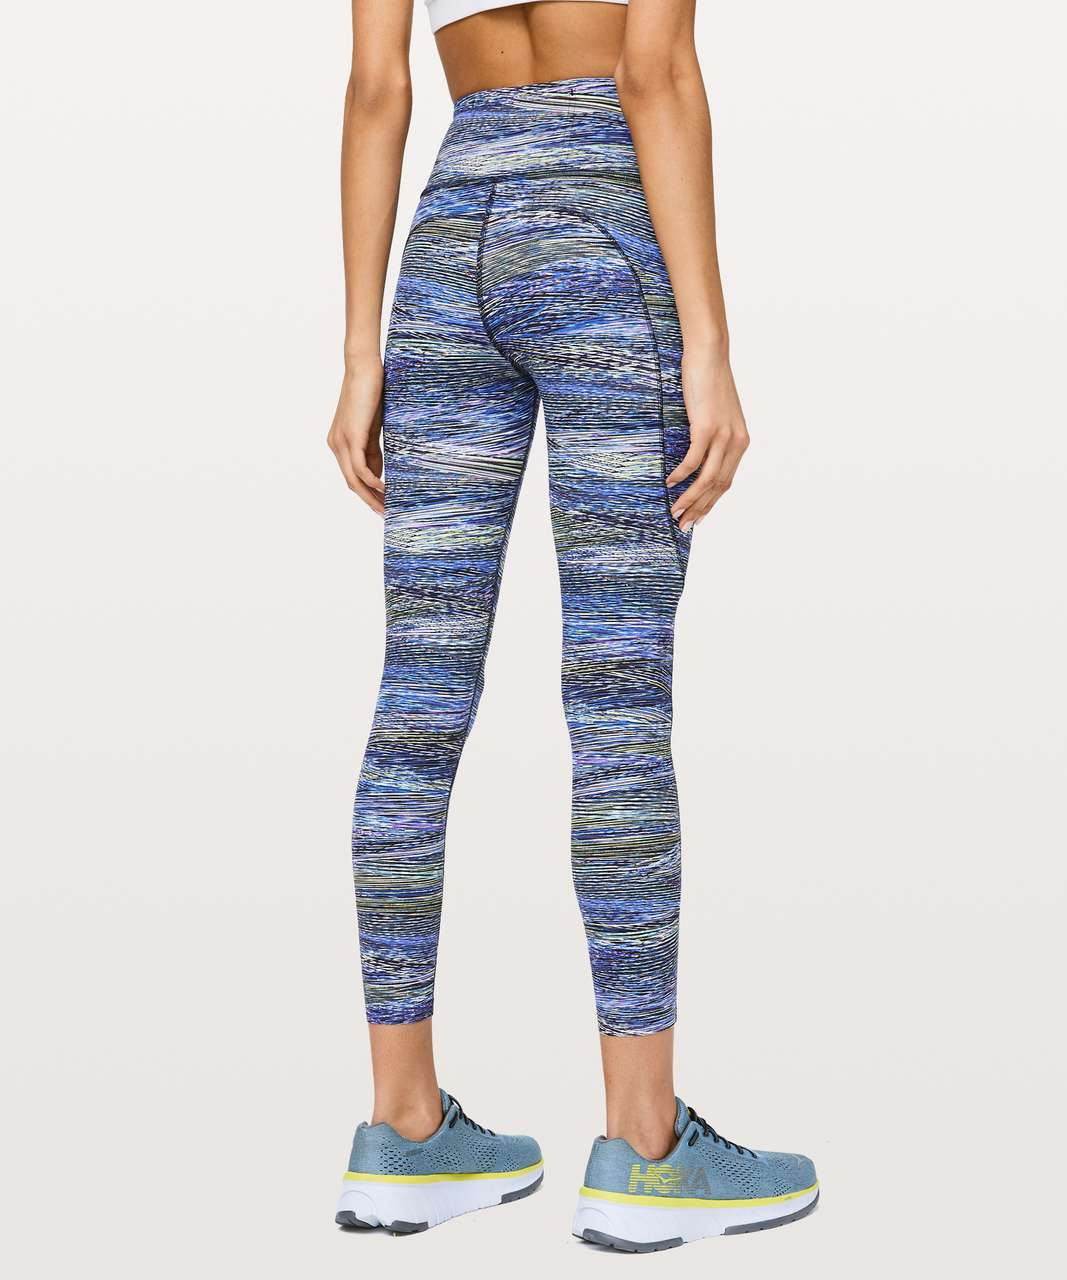 "Lululemon Fast and Free Tight II 25"" *Non-Reflective Nulux - Interconnect Blue Multi"